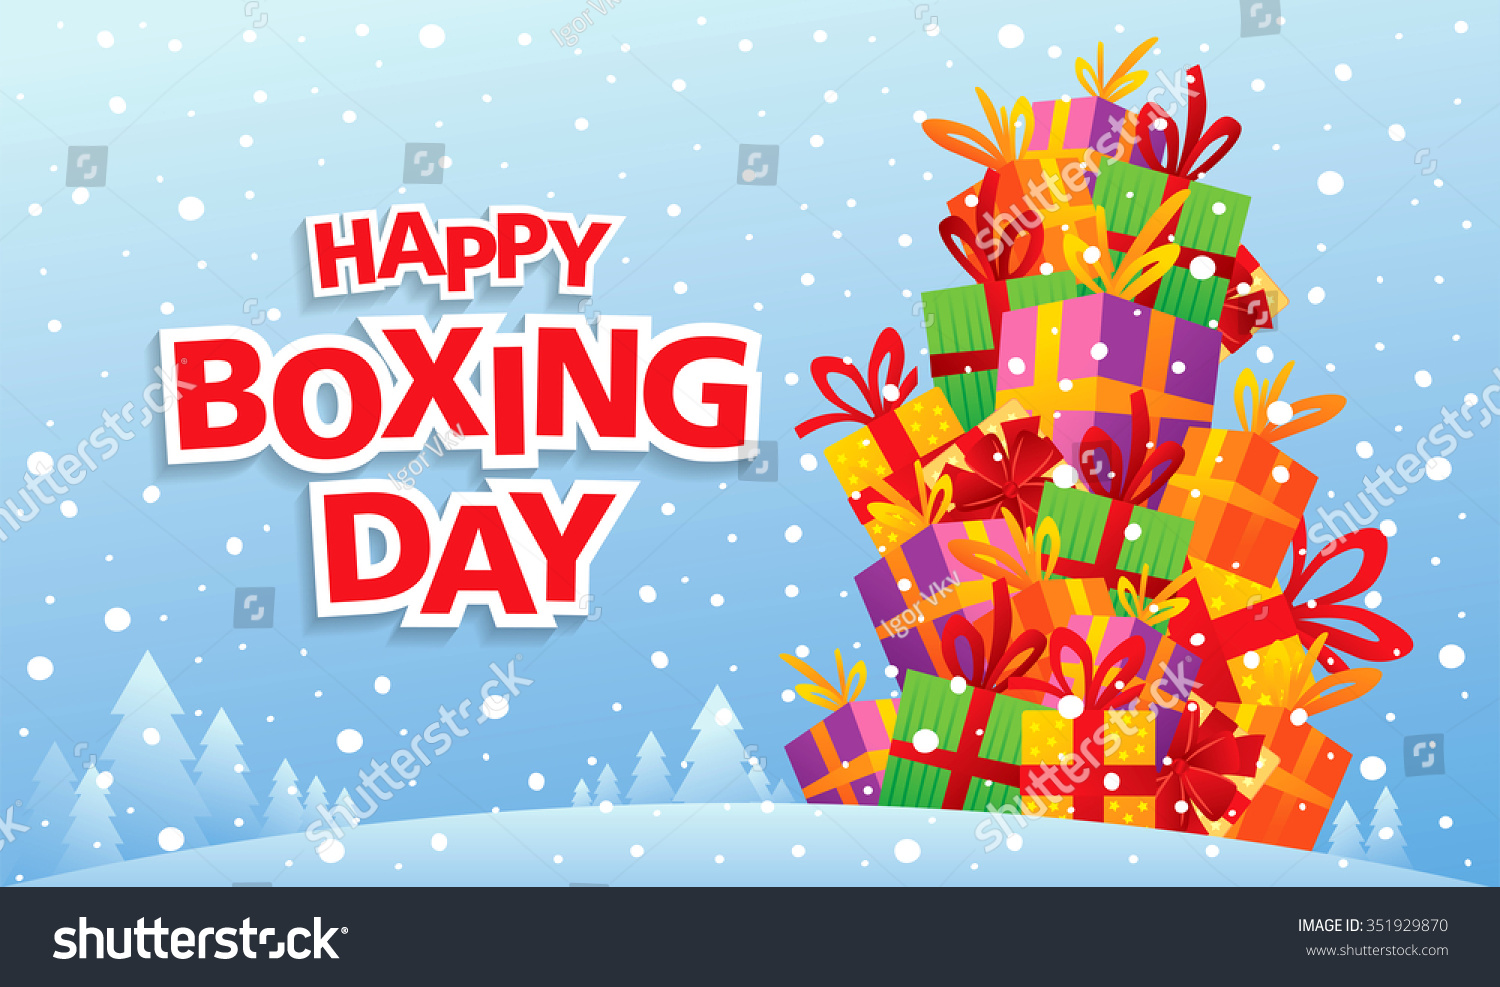 Happy Boxing Day Vector Illustration Stock Vector Royalty Free